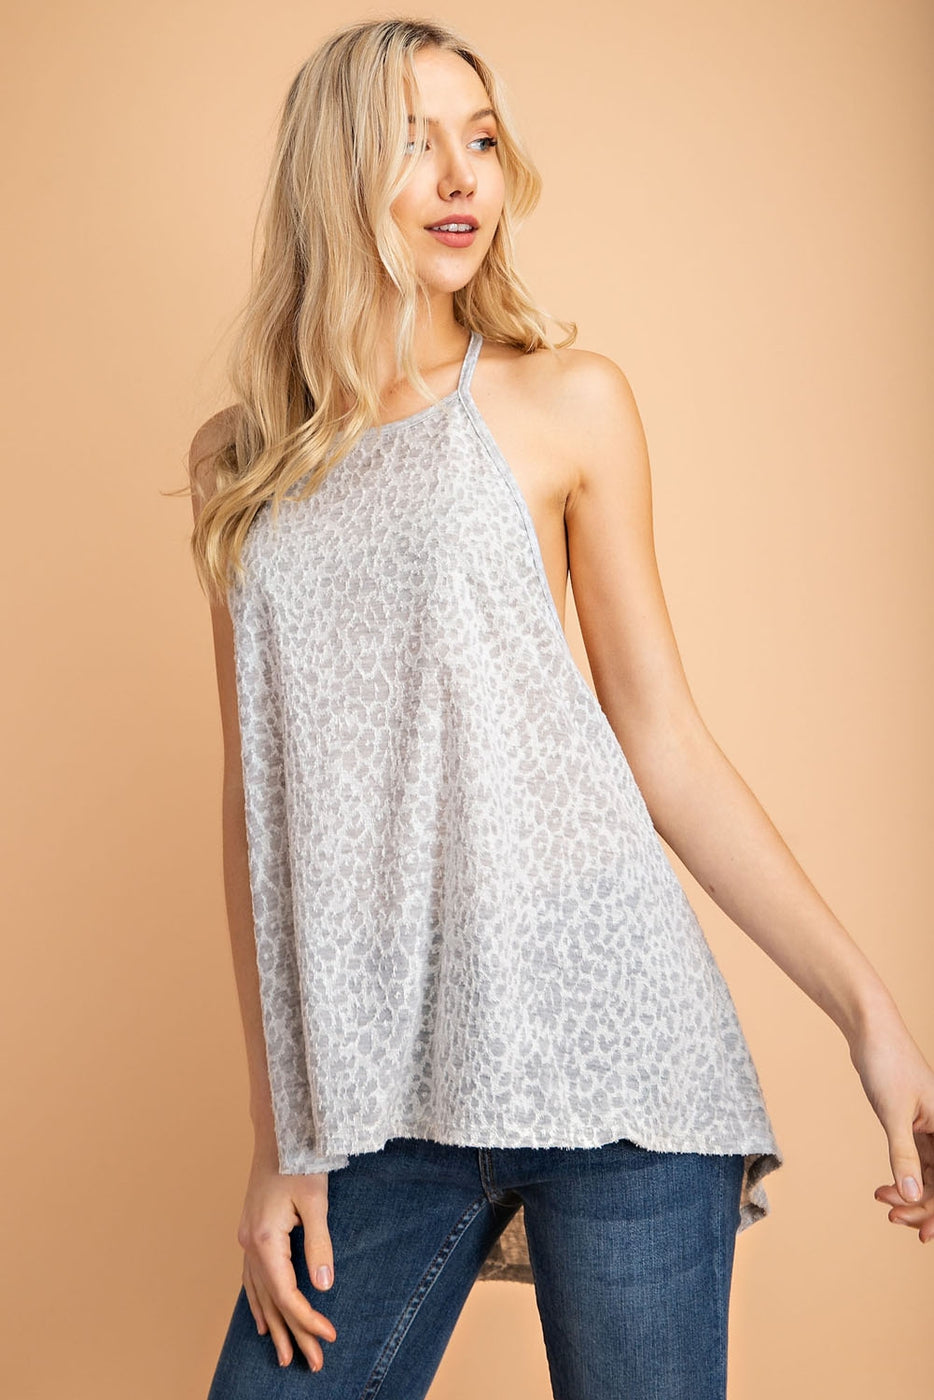 Reverse Way Fabric Point Sleeveless Knit Top In Grey Siin Bees